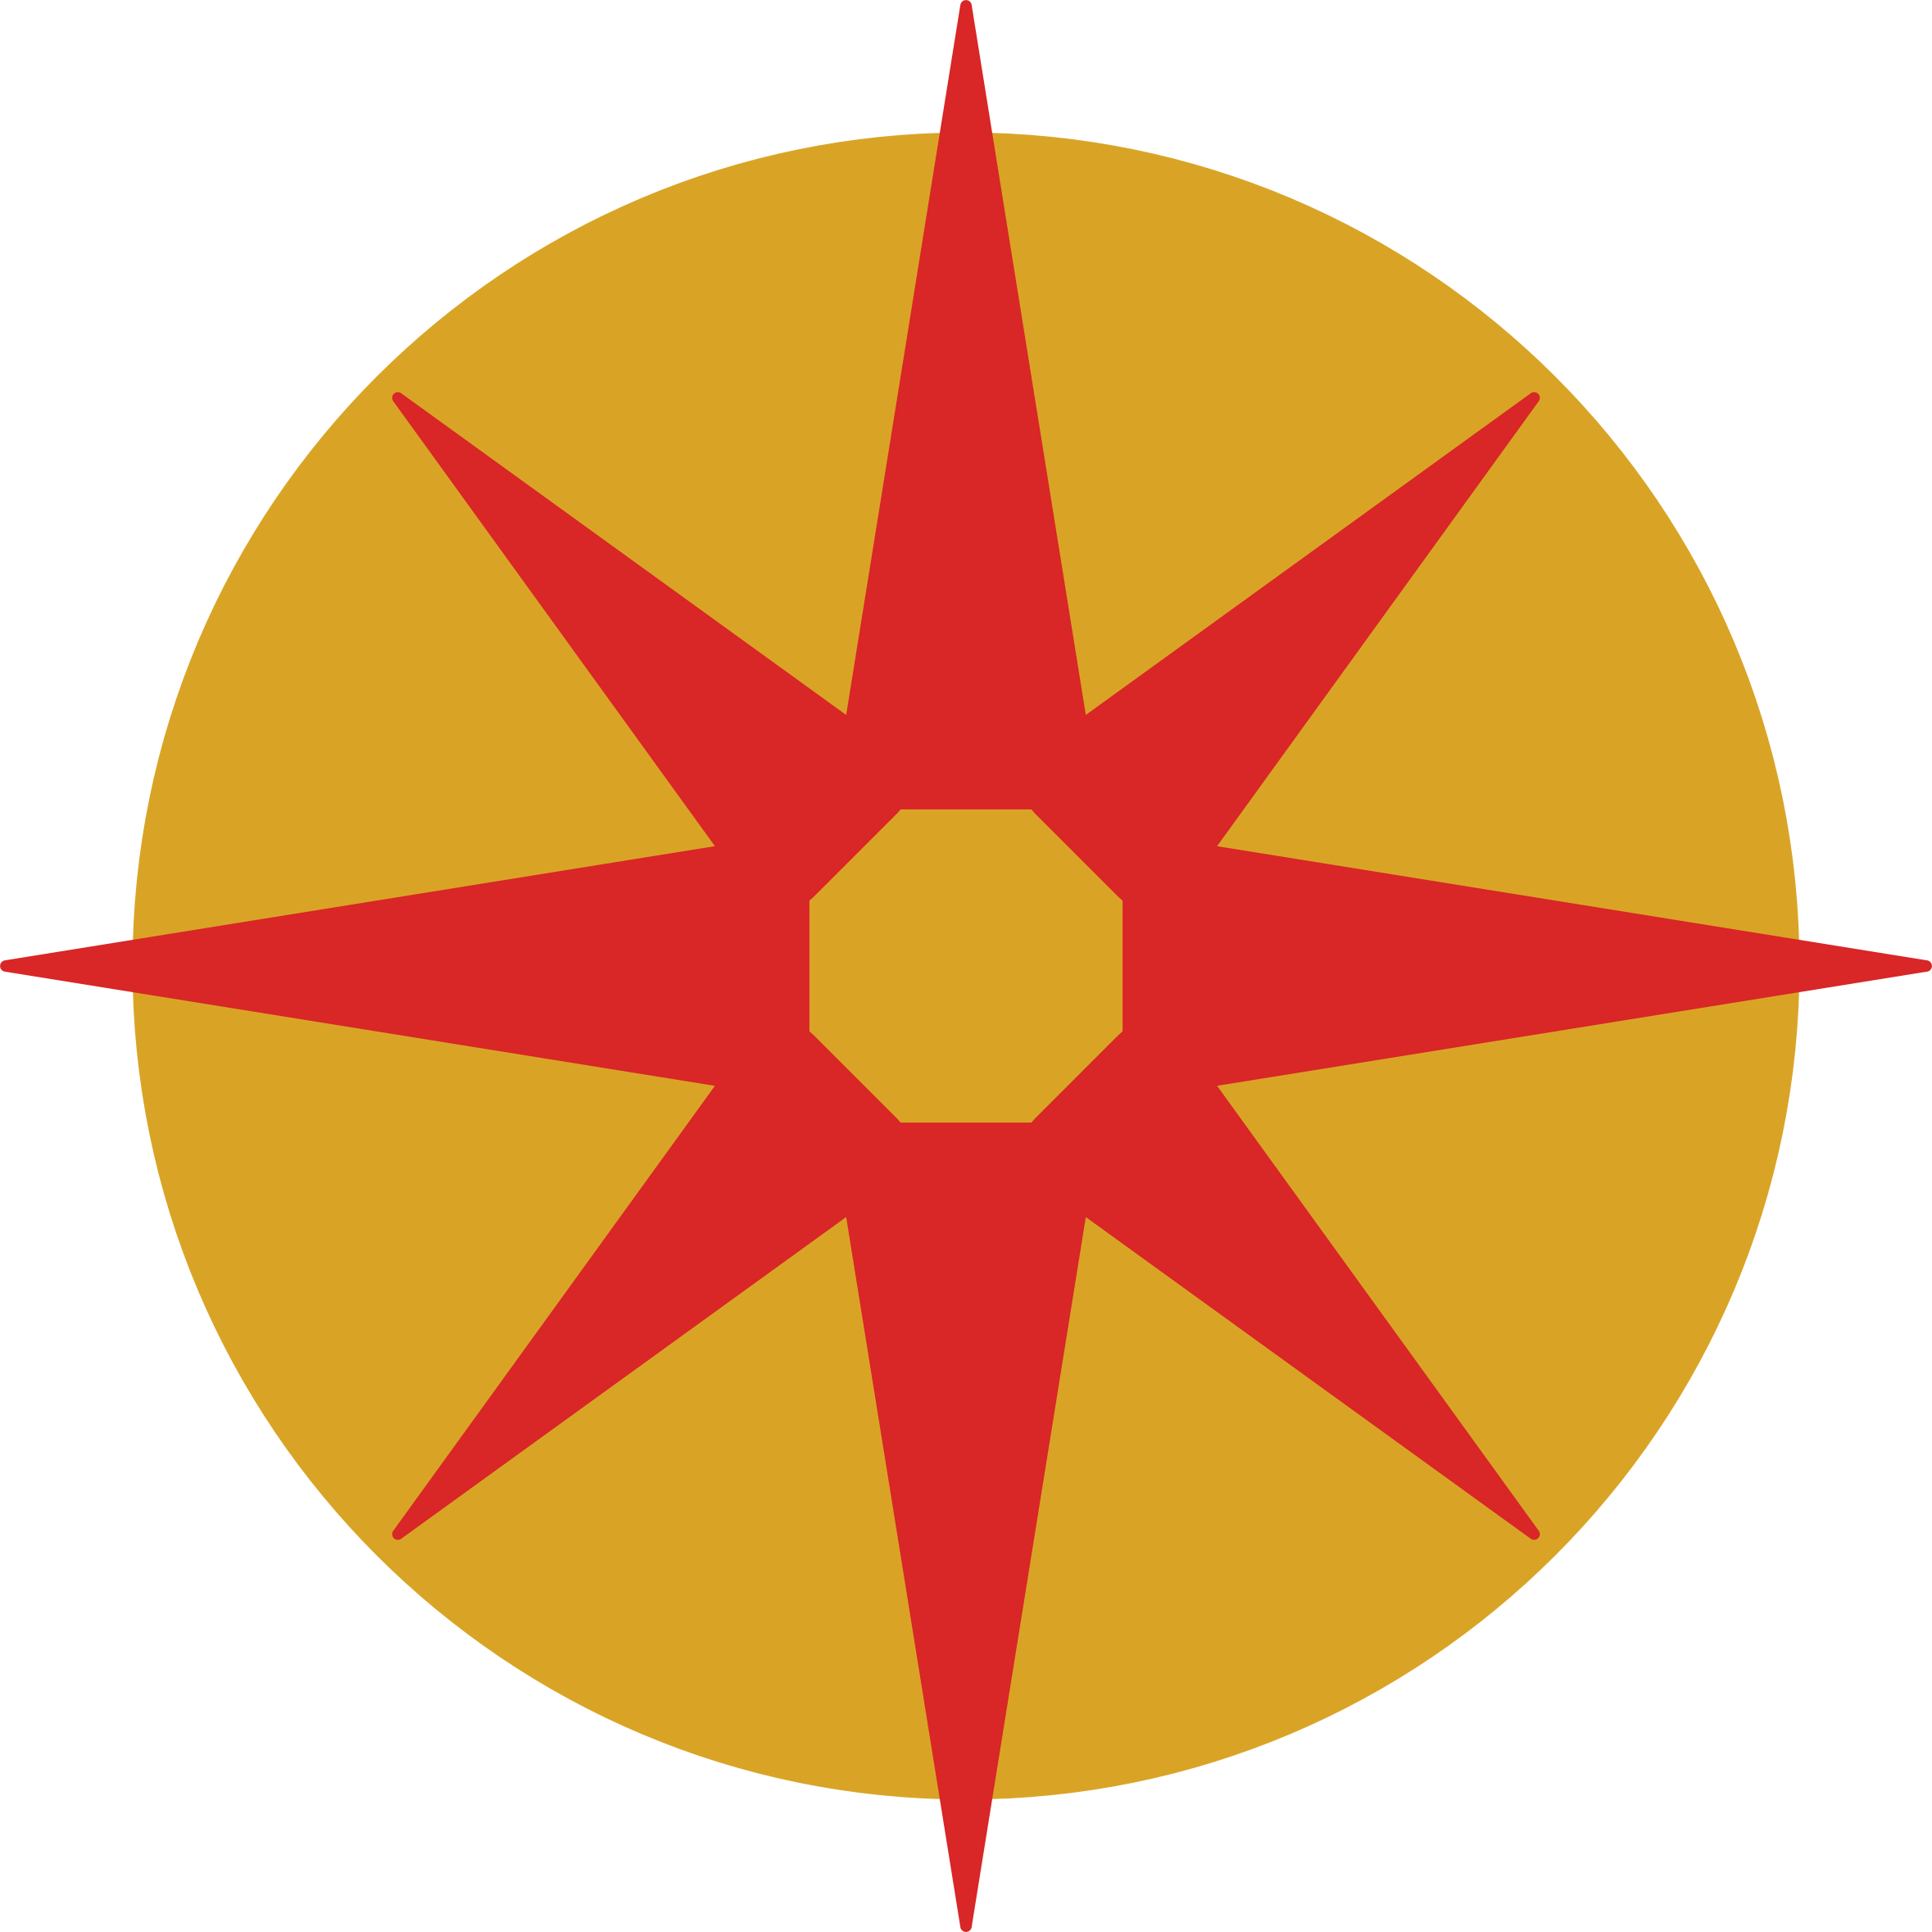 Compass clipart social science. A icon icons png